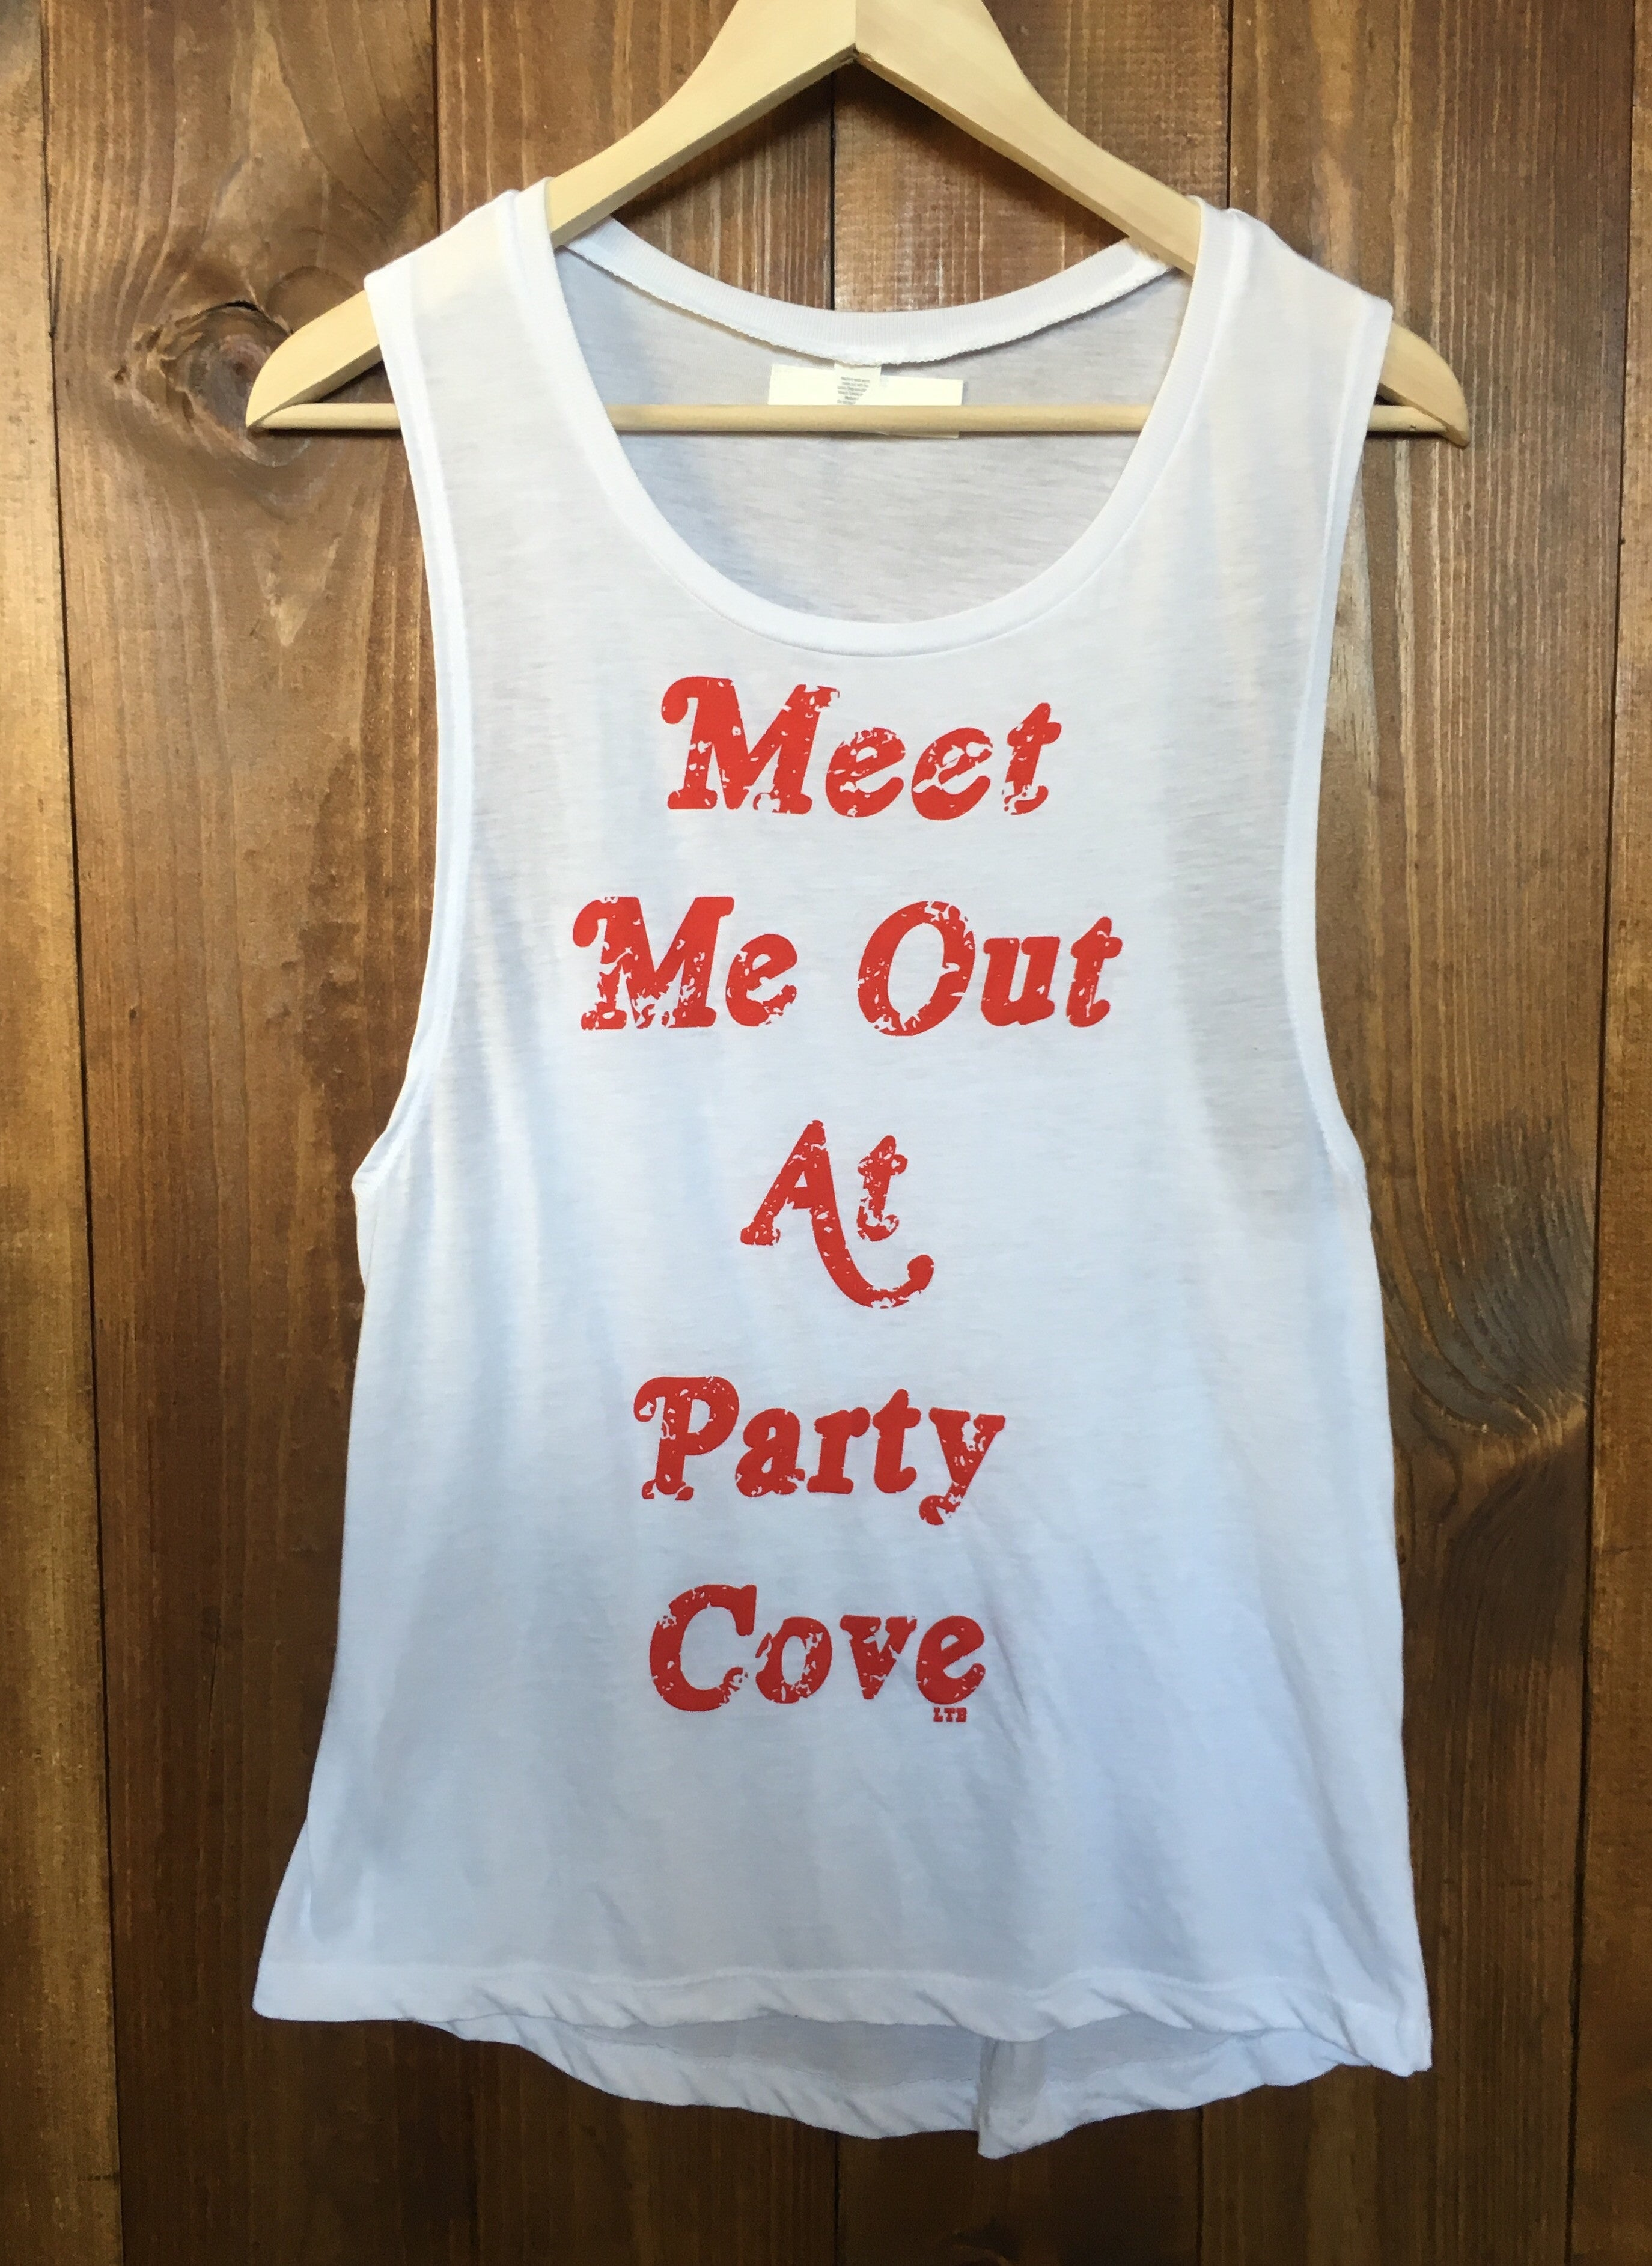 Party Cove Muscle Tank